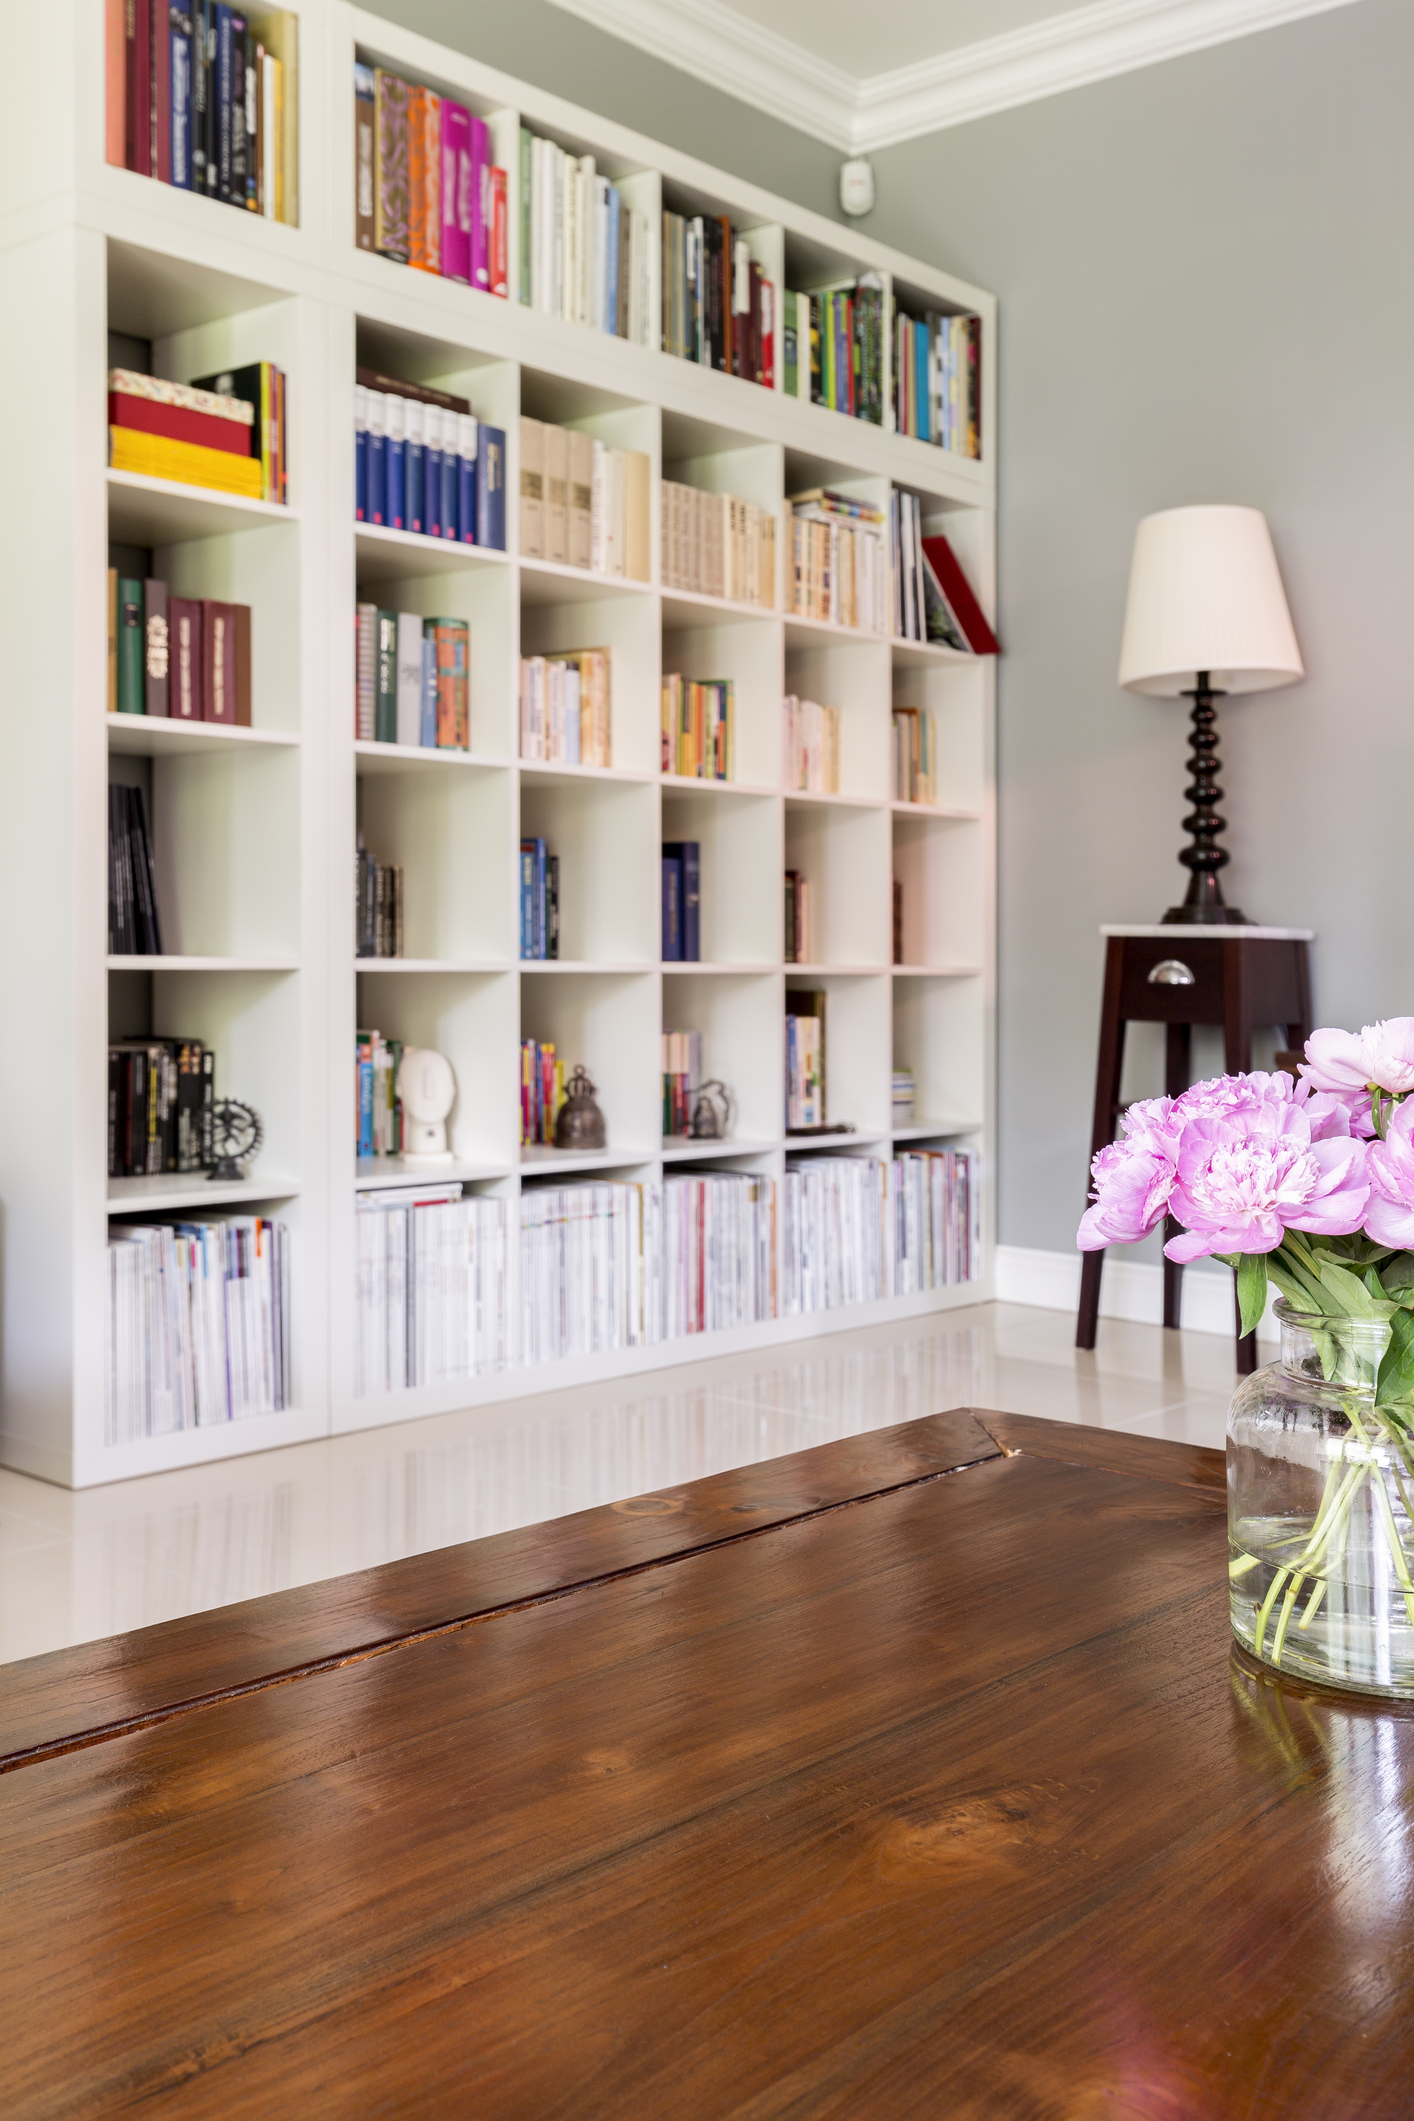 A perfectly-organised bookcase (Thinkstock/PA)